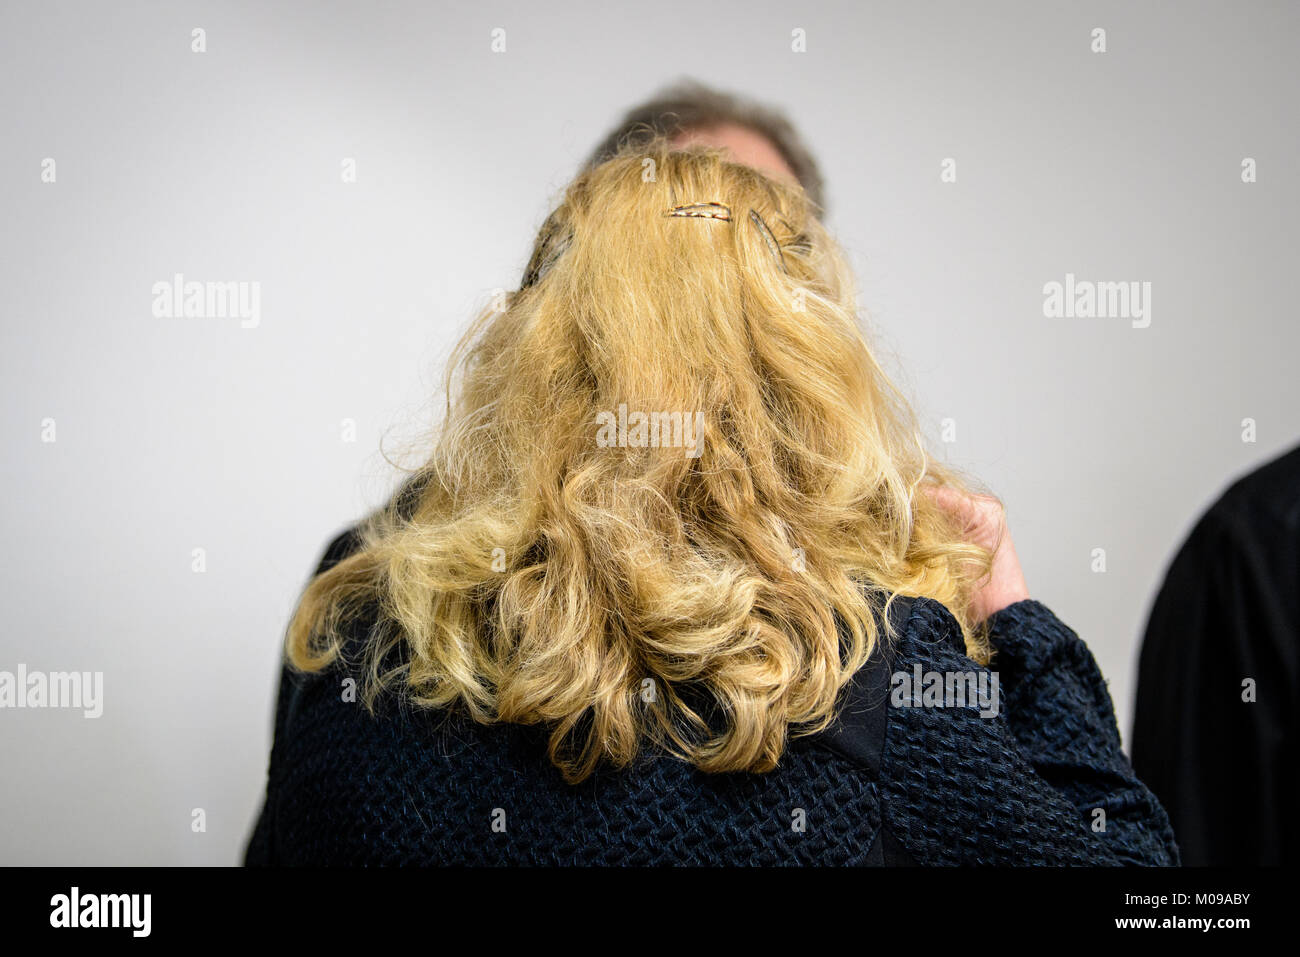 Munich, Germany. 19th Jan, 2018. Defendant Renate W. speaks with her lawyers in the court of Munich, Germany, 19 - Stock Image